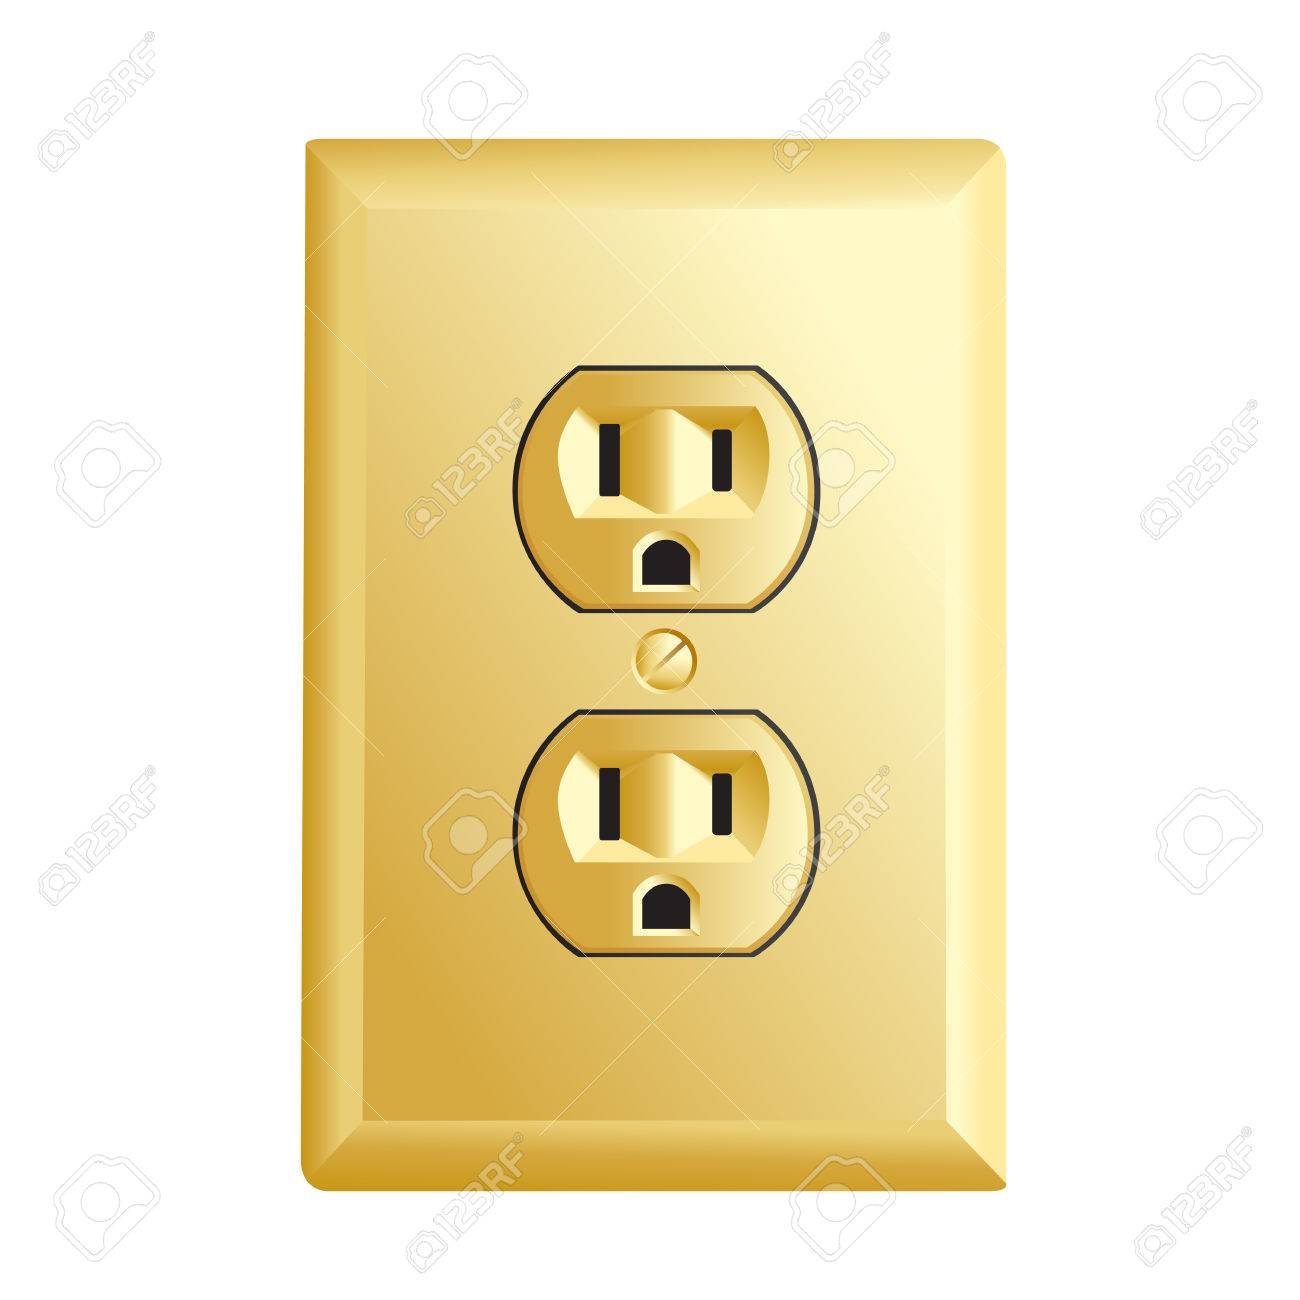 Electrical Outlet In The USA, Gold Color Power Socket Royalty Free ...